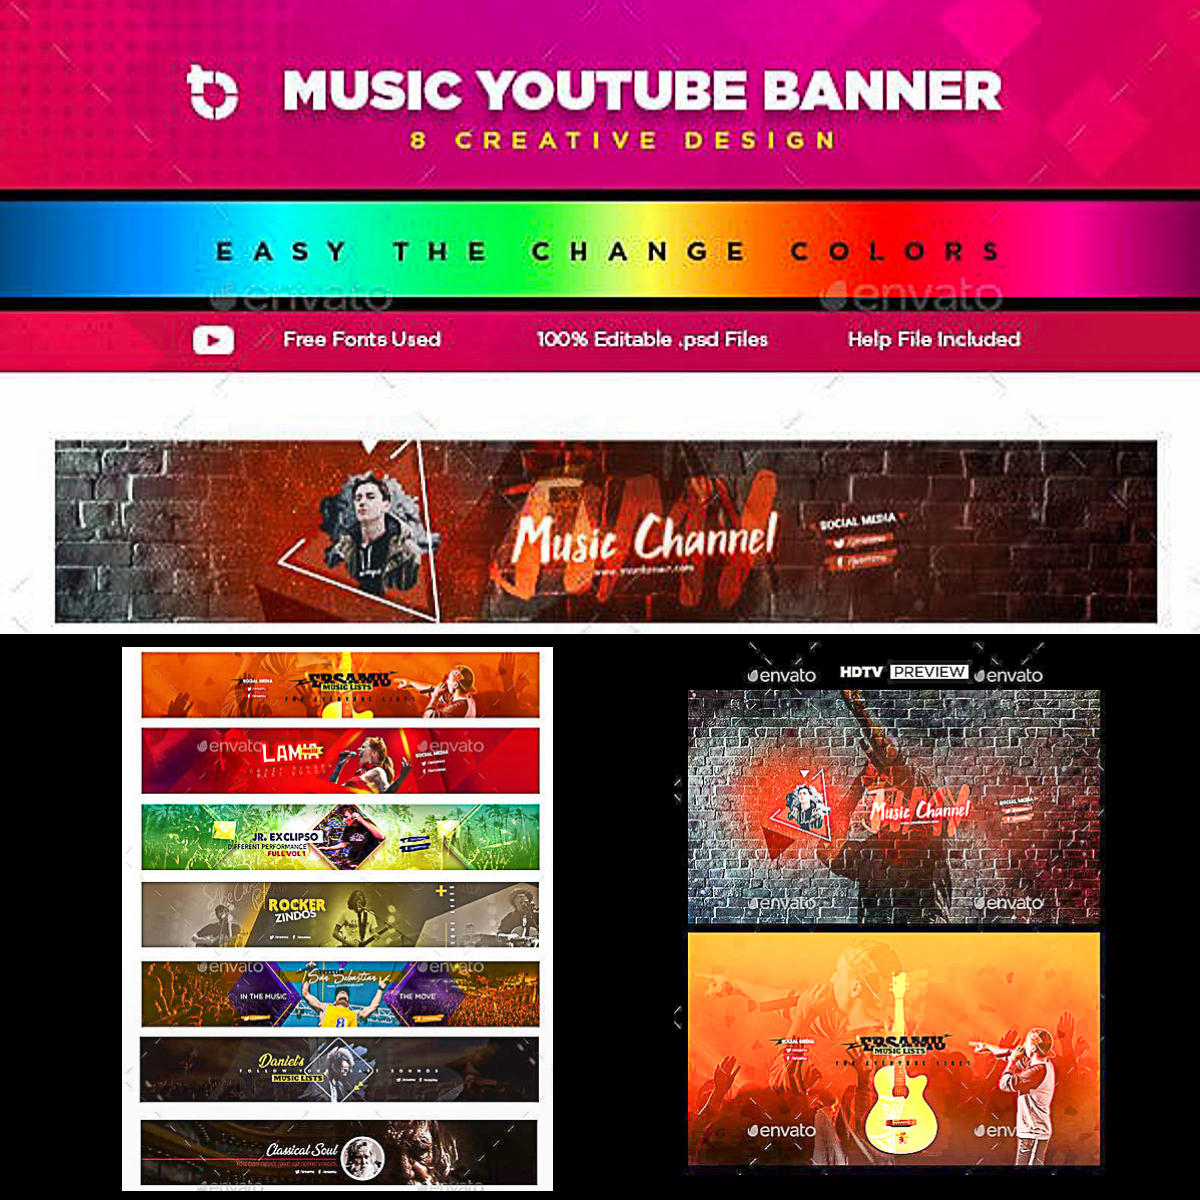 Music Youtube Banner Template | Free download